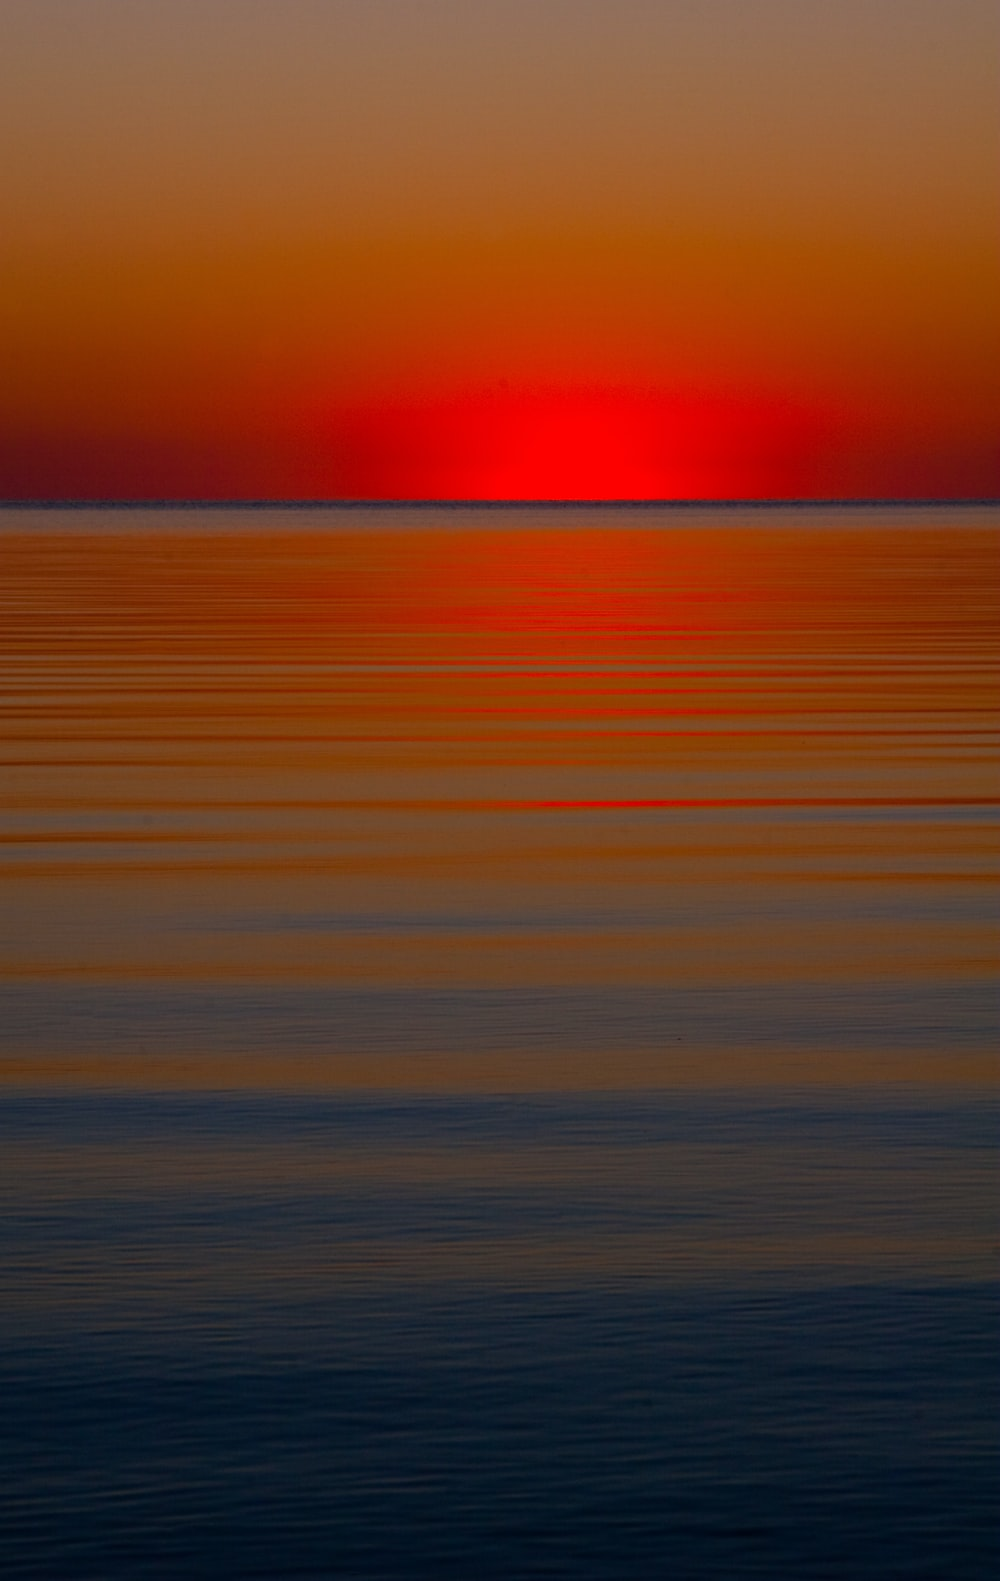 sunset over the ocean waterts